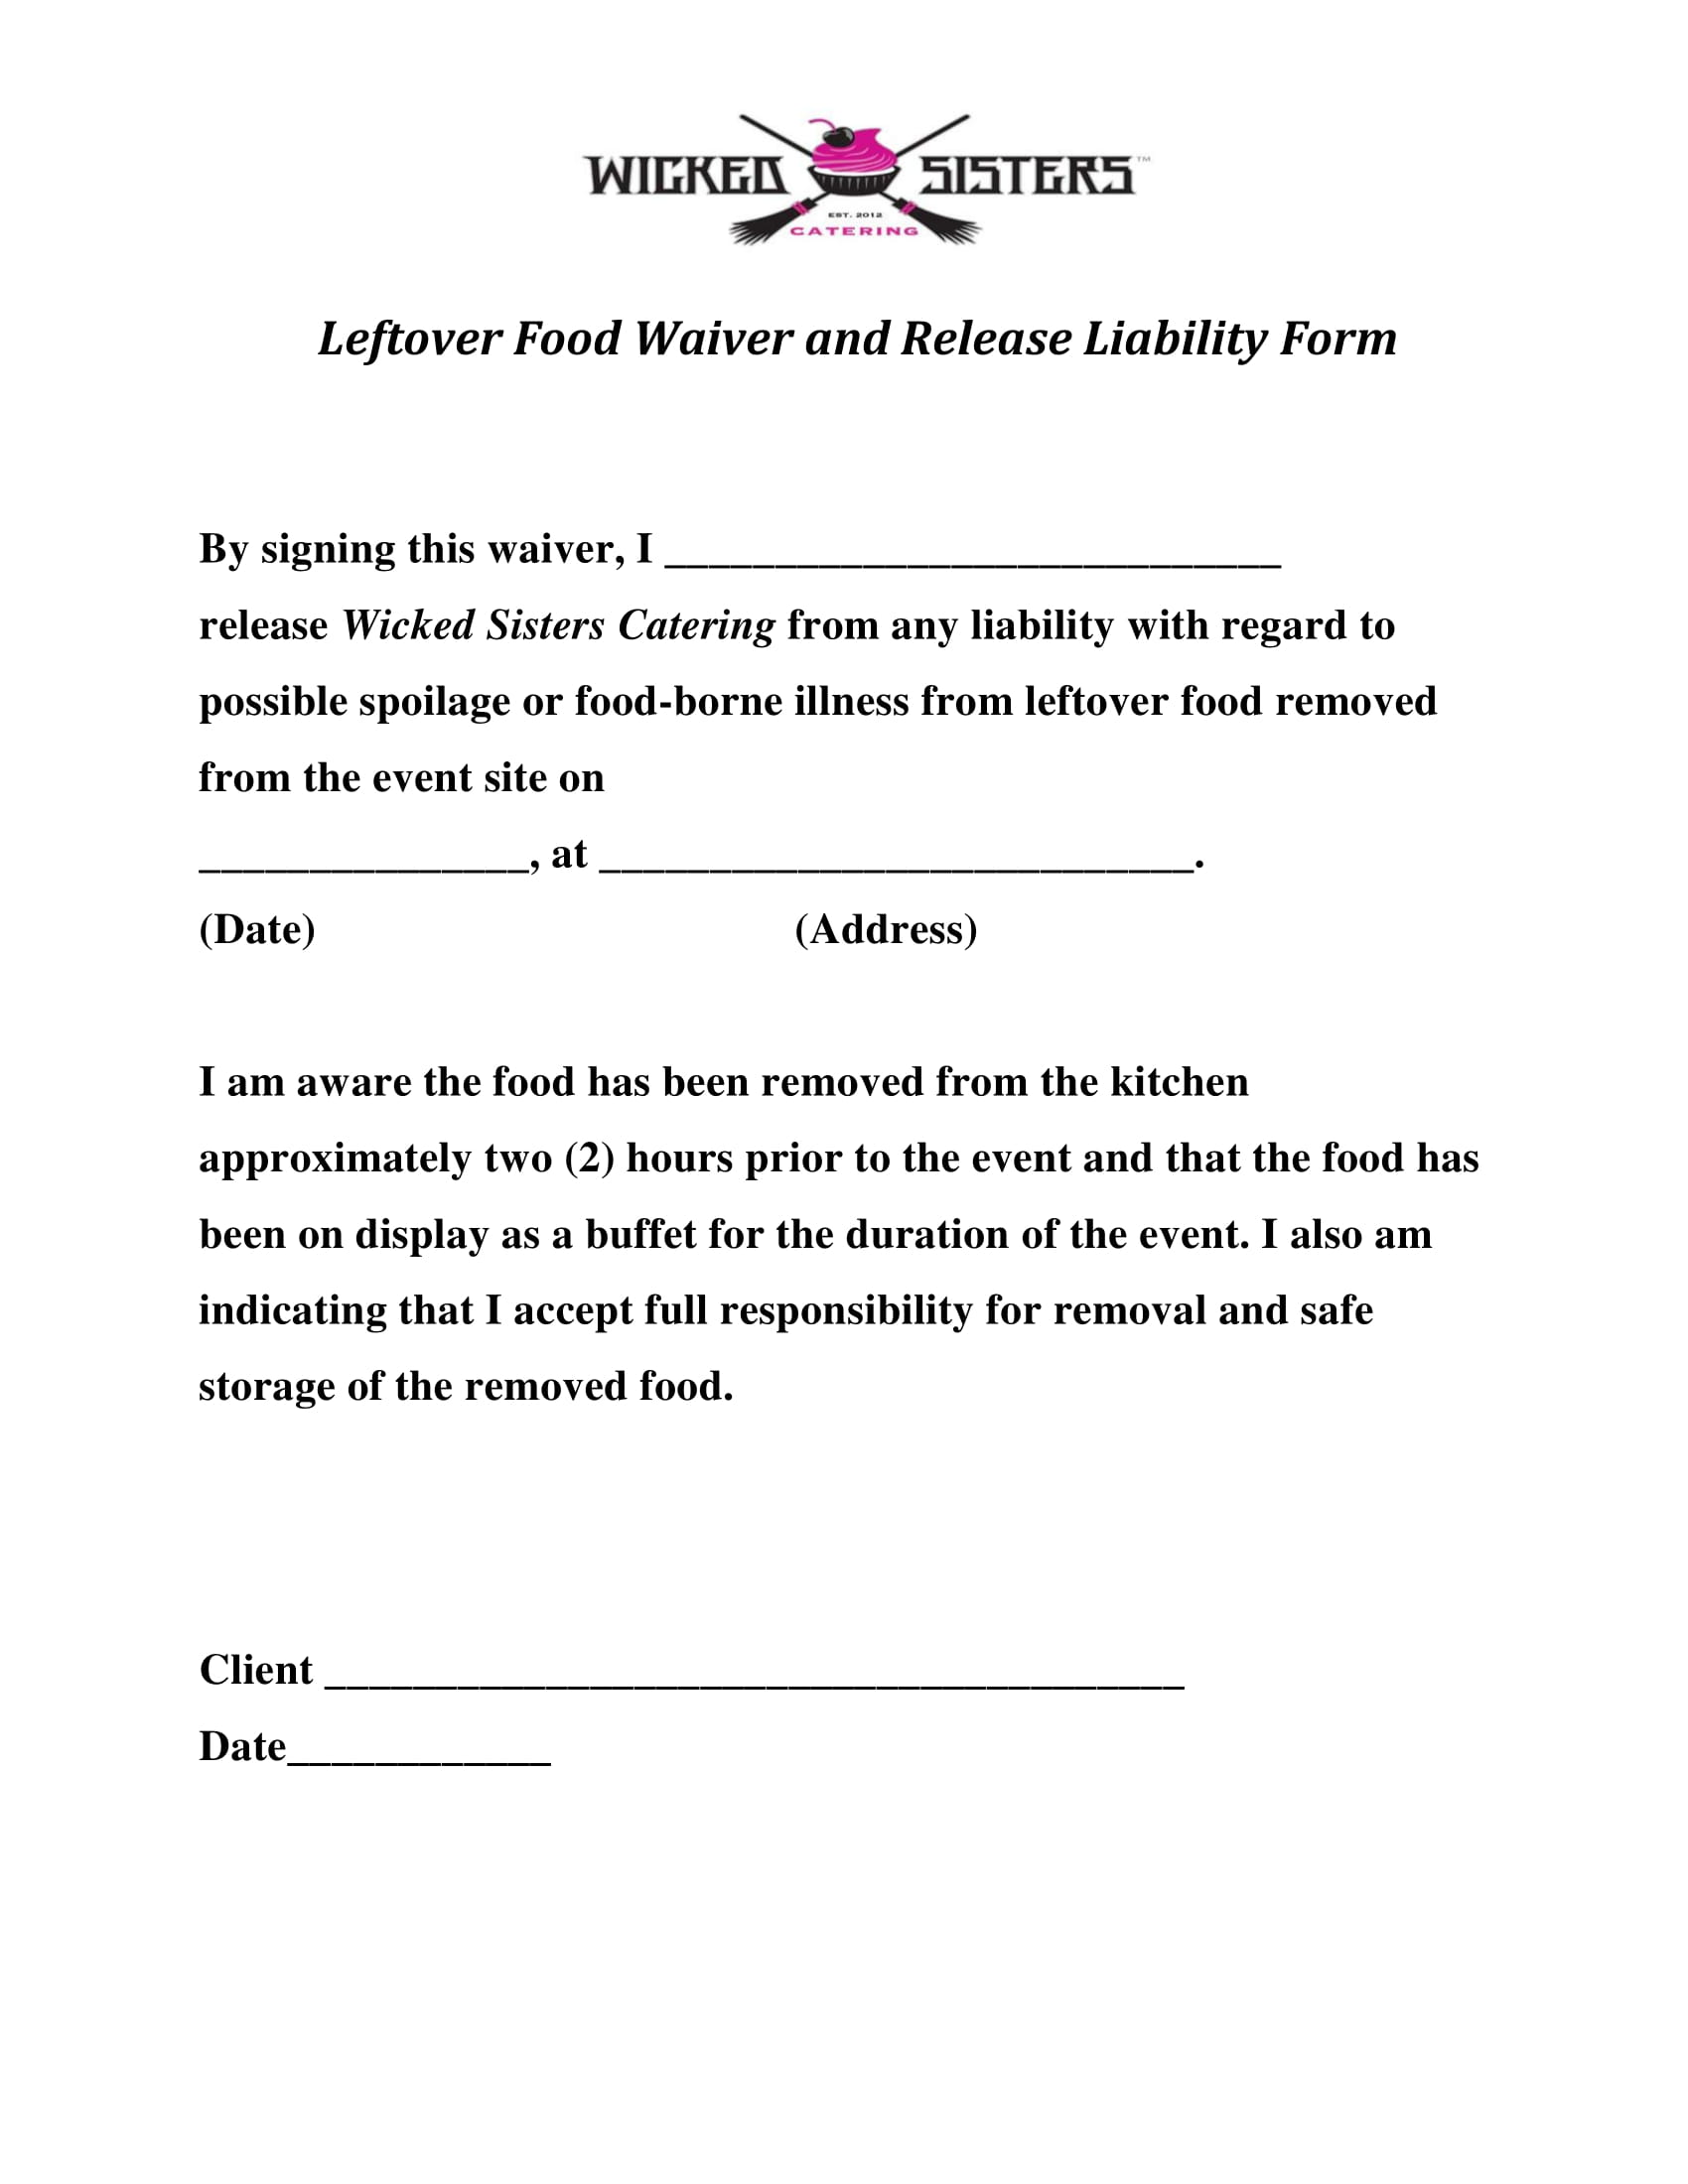 leftover food waiver form 1